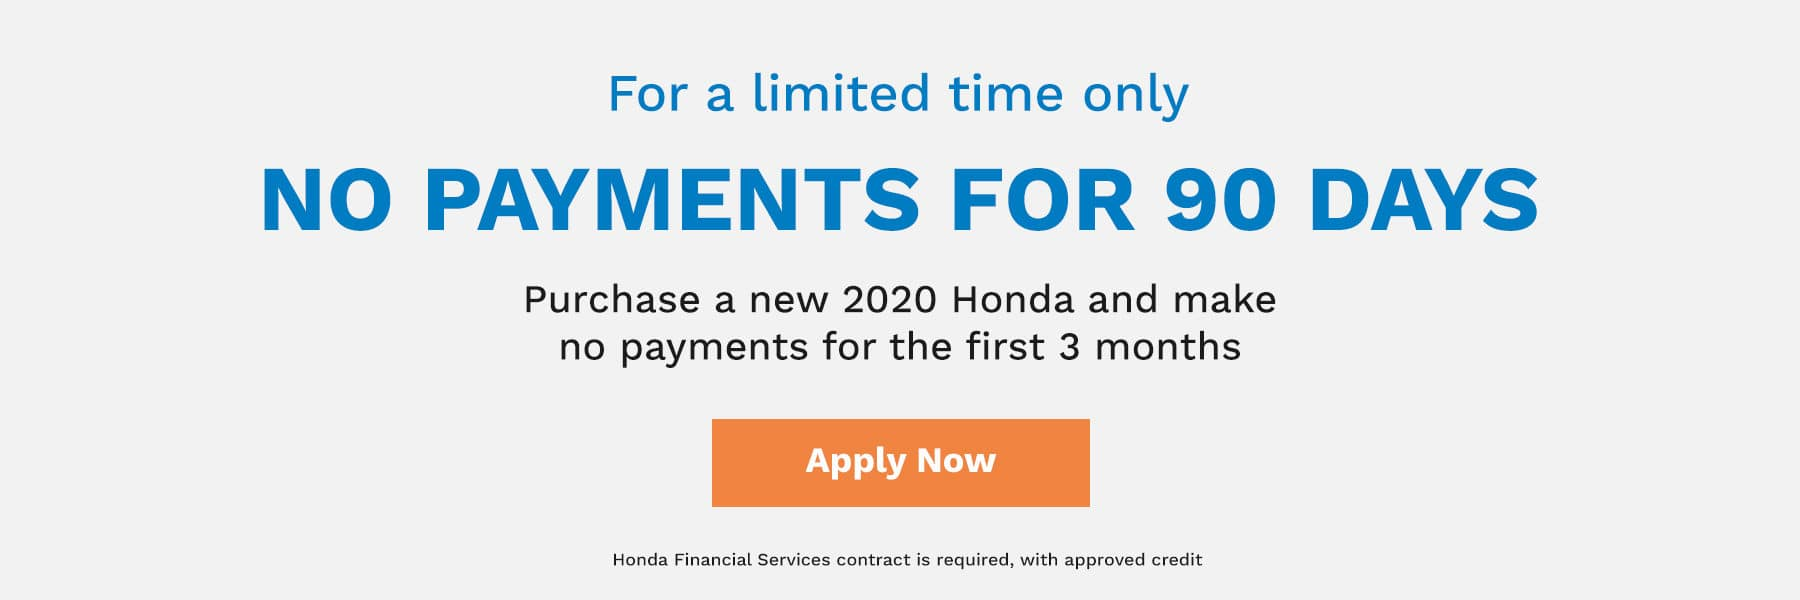 For a limited time only, no payments for 90 days! Purchase a new 2019 or 2020 Honda and make no payments for the first 3 months.